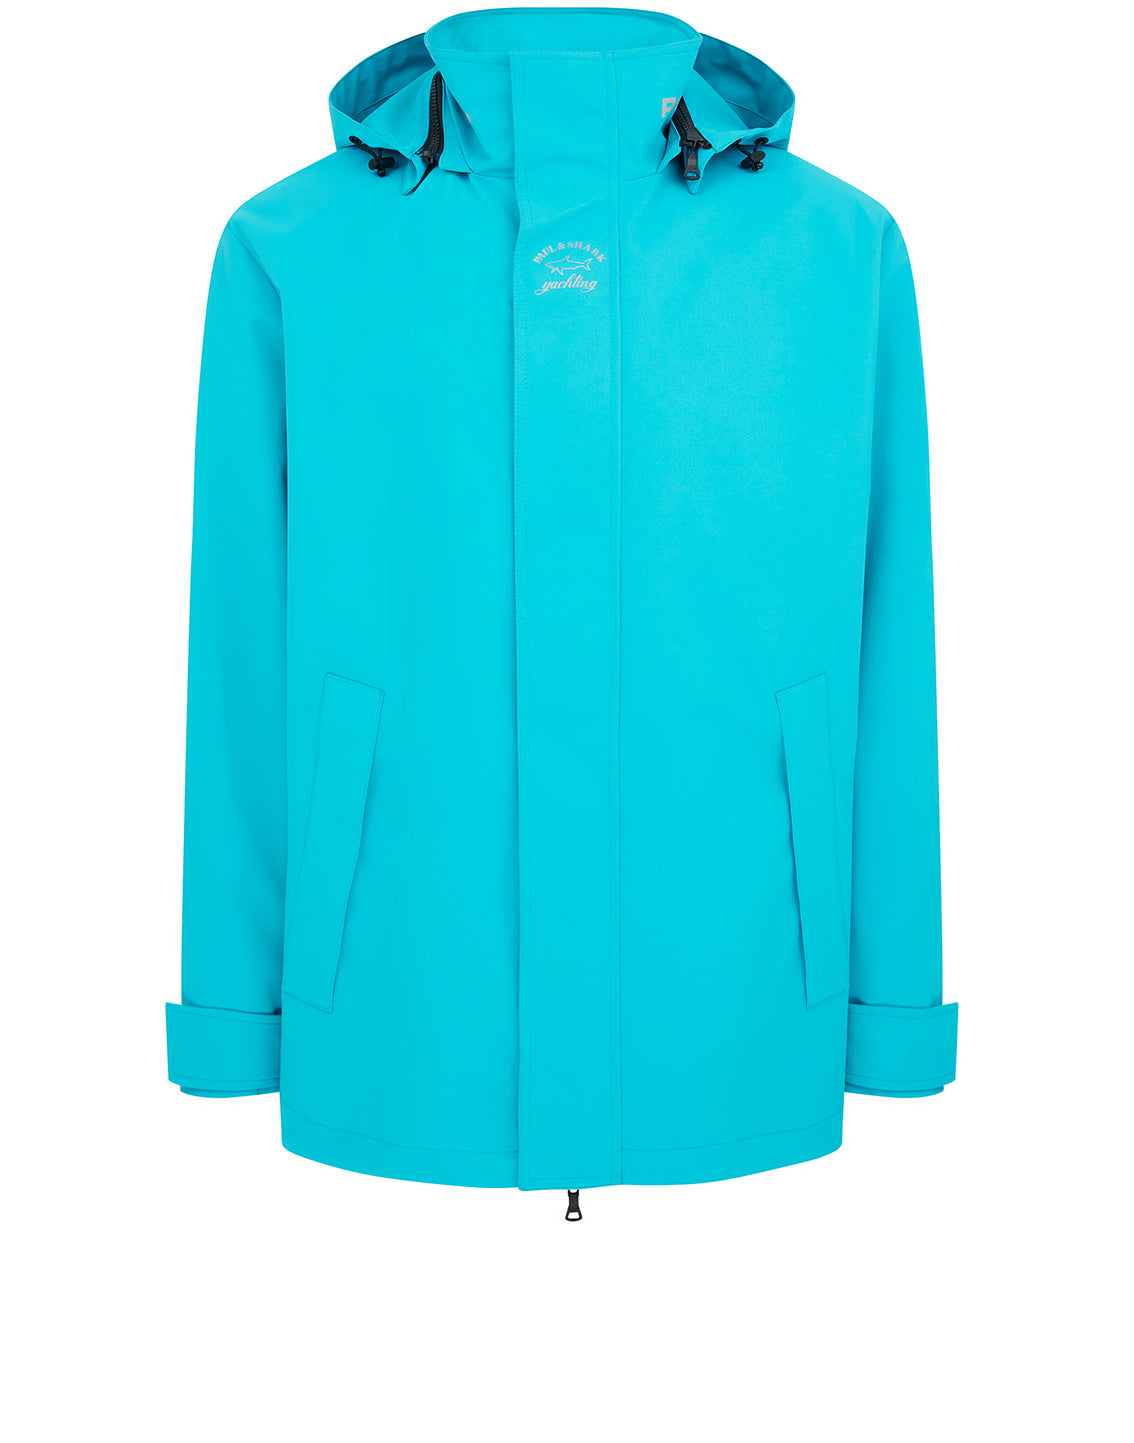 Typhoon Save The Sea Jacket in Turquoise - M / Blue / 62019300 - IT